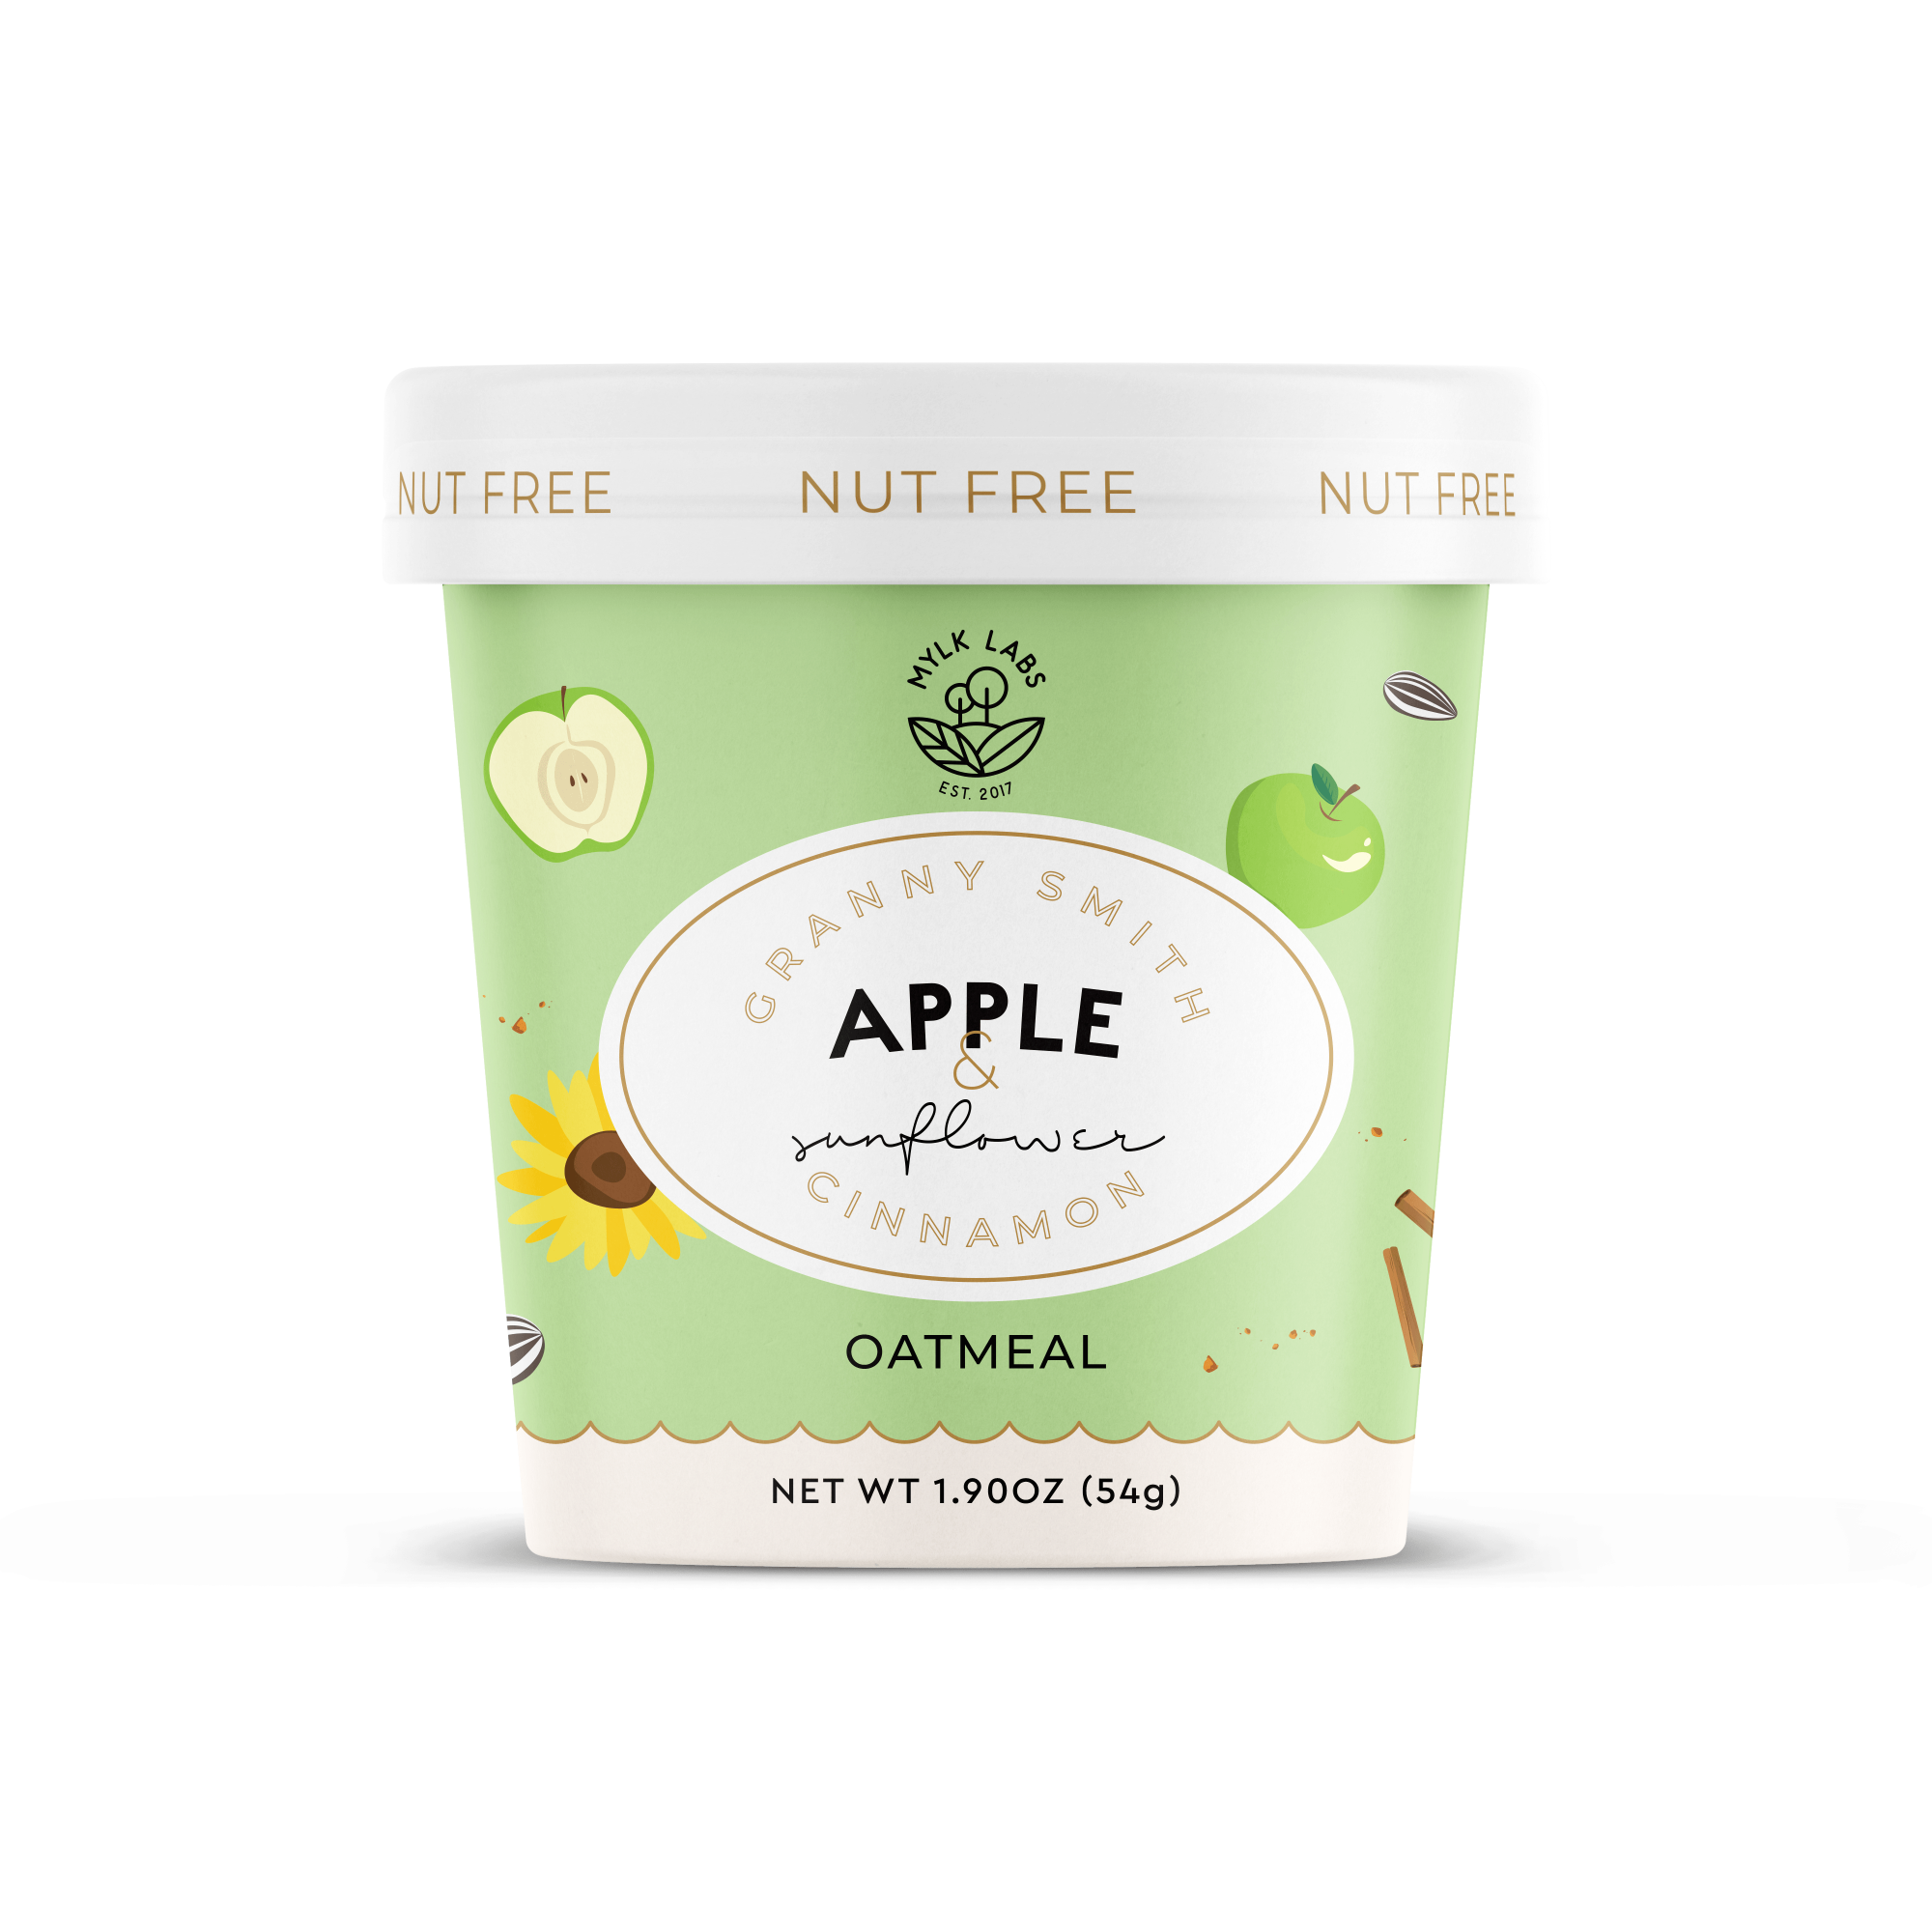 Mylk Labs Gluten Free High Protein Instant Oatmeal — Nut Free Granny Smith Apple and Sunflower Cinnamon Oatmeal Cup — Kilned Thin Rolled Whole Grain Oats allergen friendly in a Travel Cup — Non-GMO, No Artificial Ingredients, Vegan,  No Refined Sugar